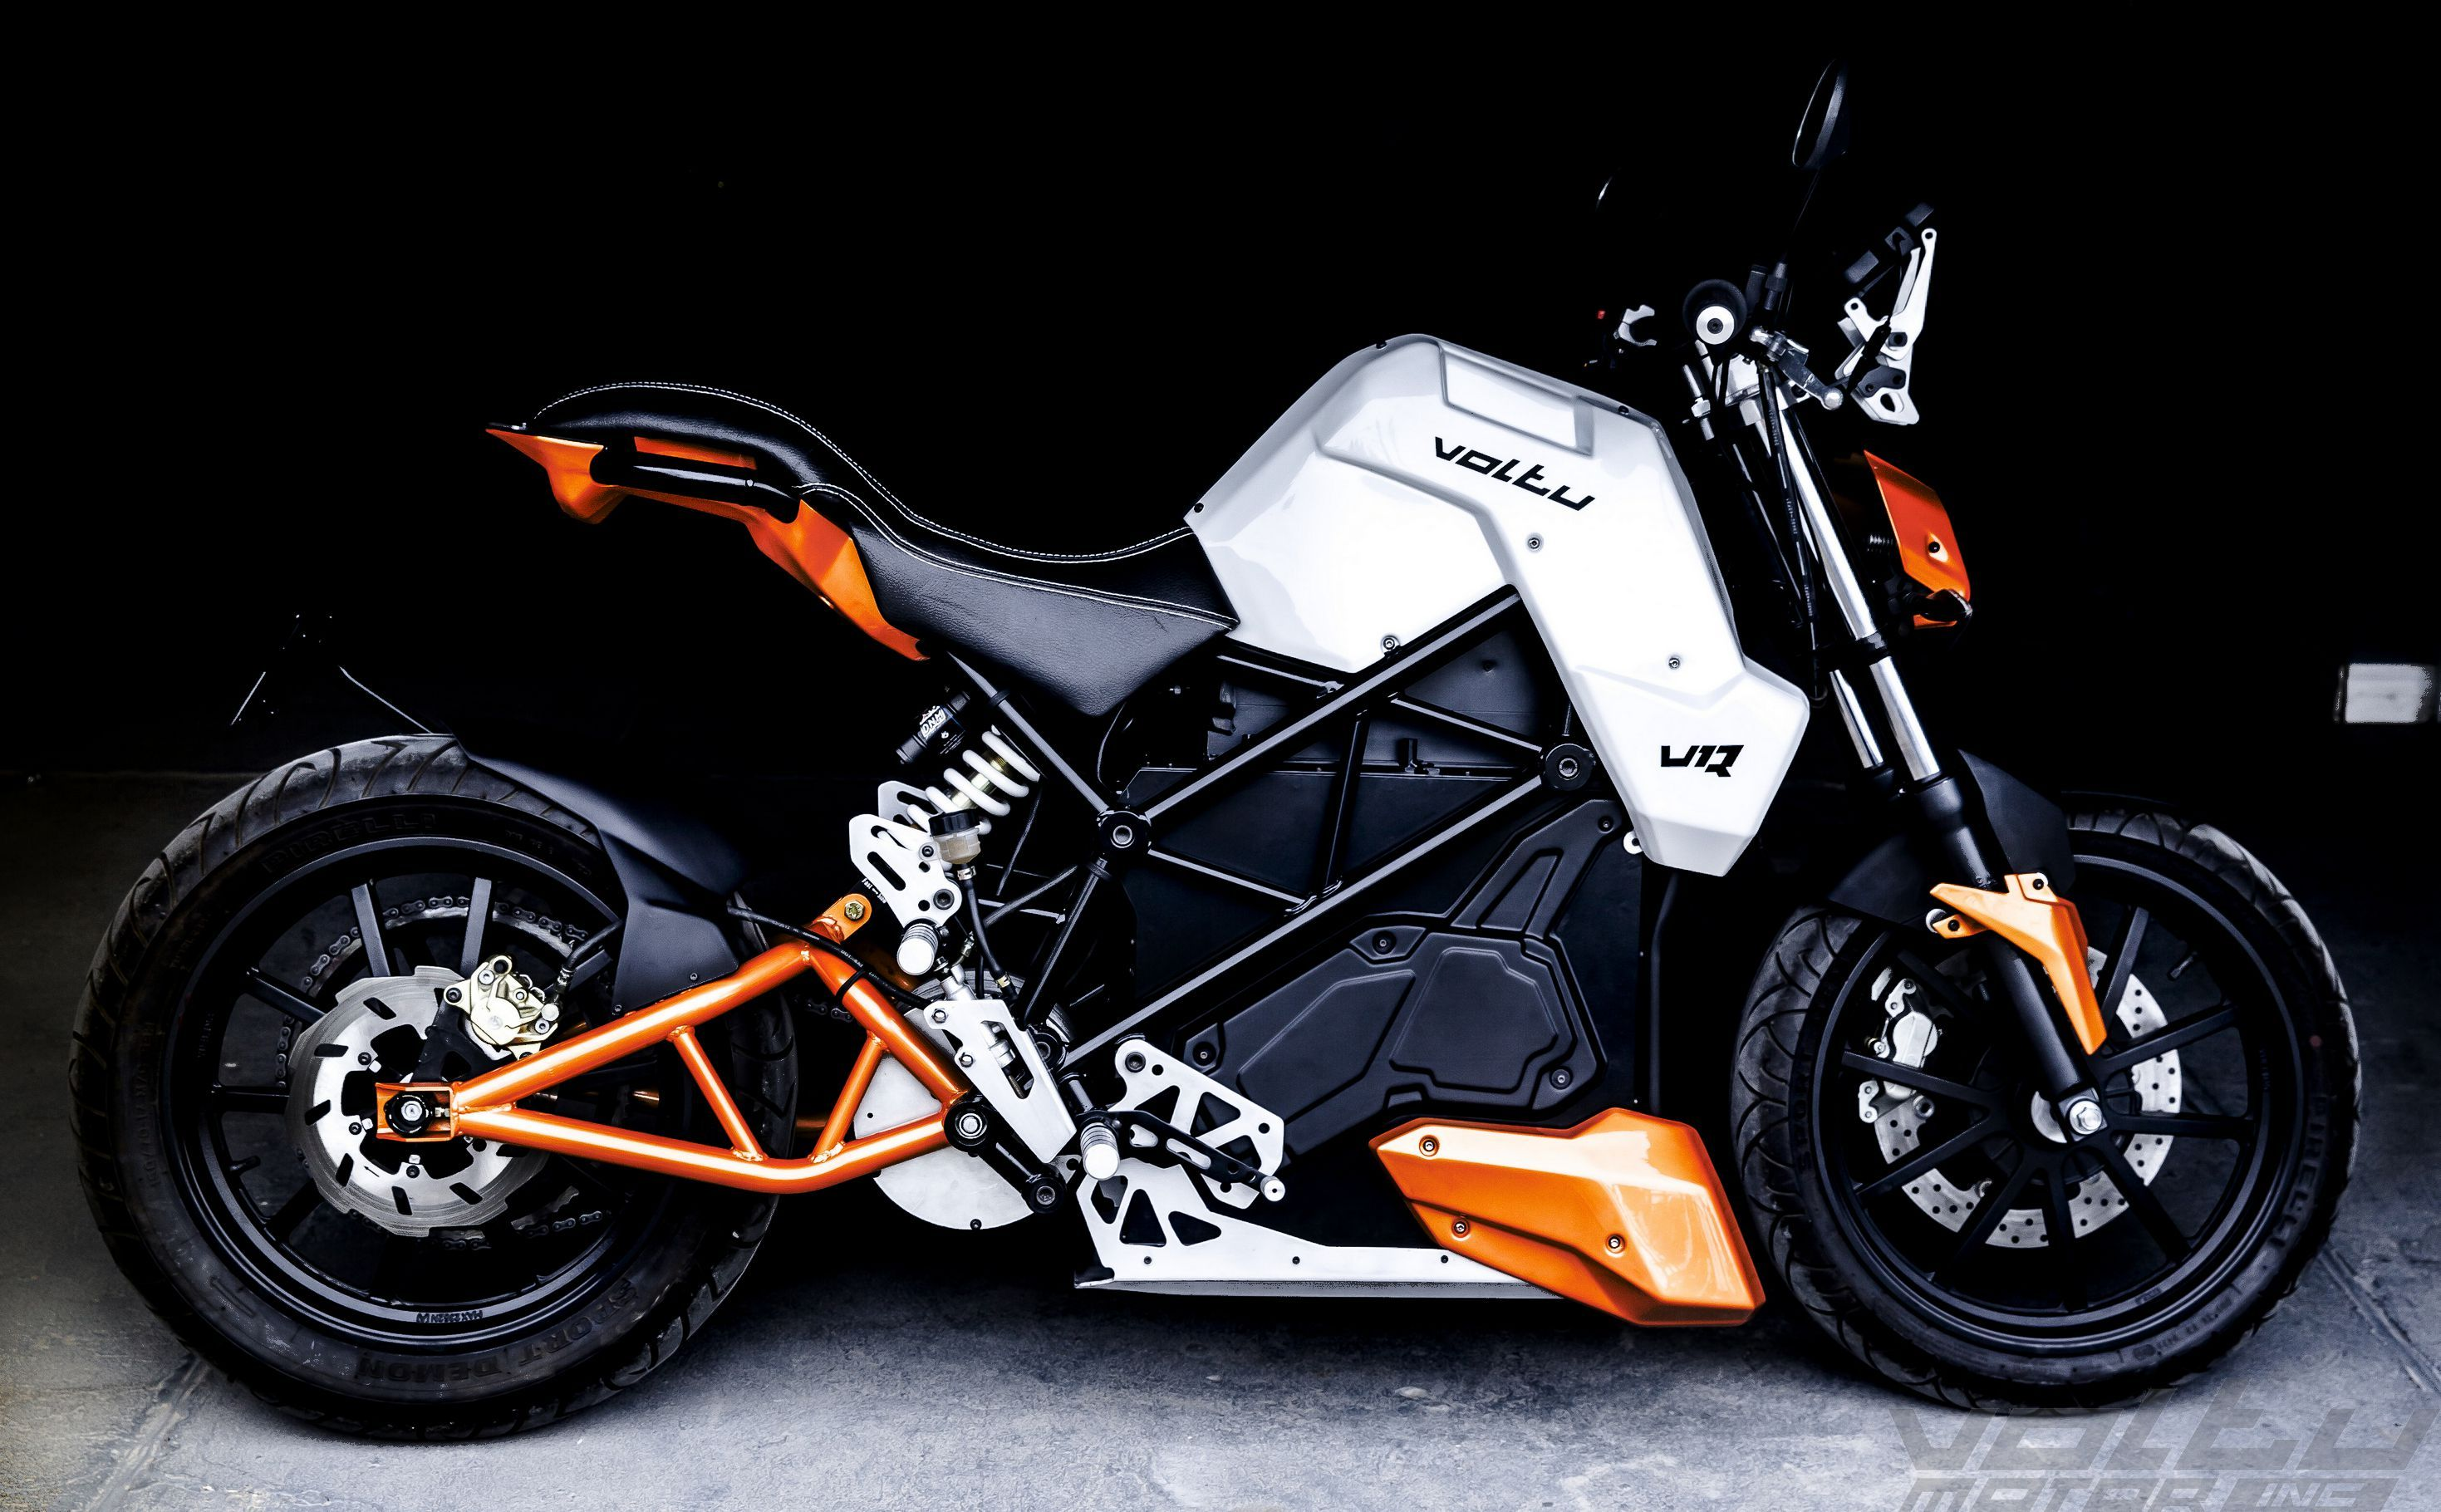 Voltu motor inc designs develop and manufactures fully electric motorcycles with proprietary drivetrain technology